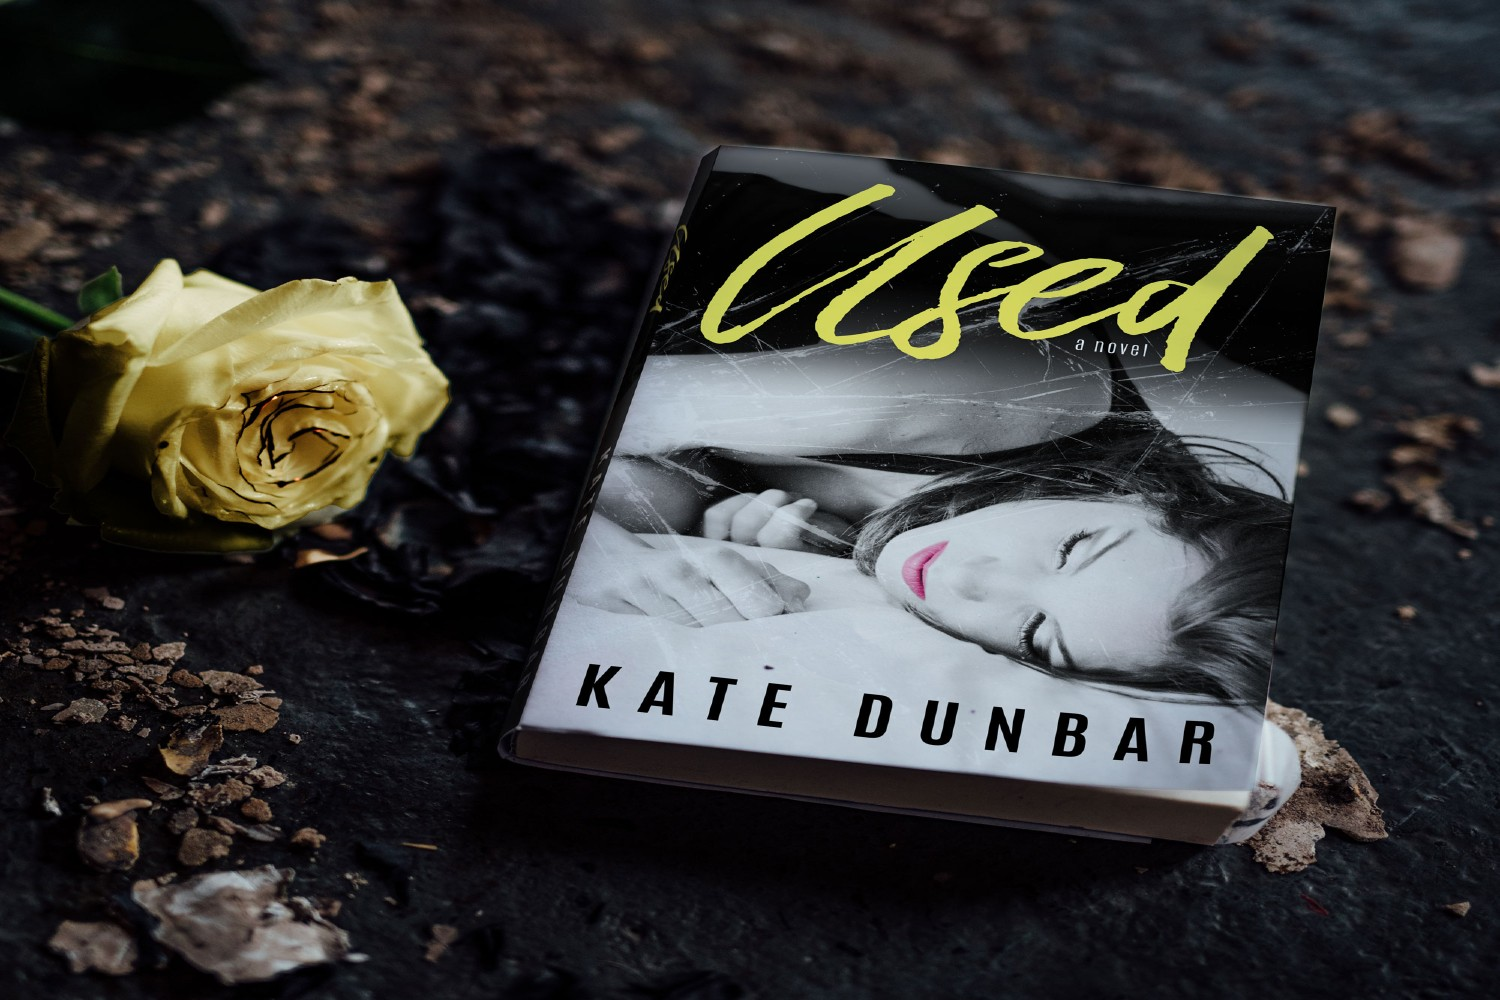 Used by Kate Dunbar